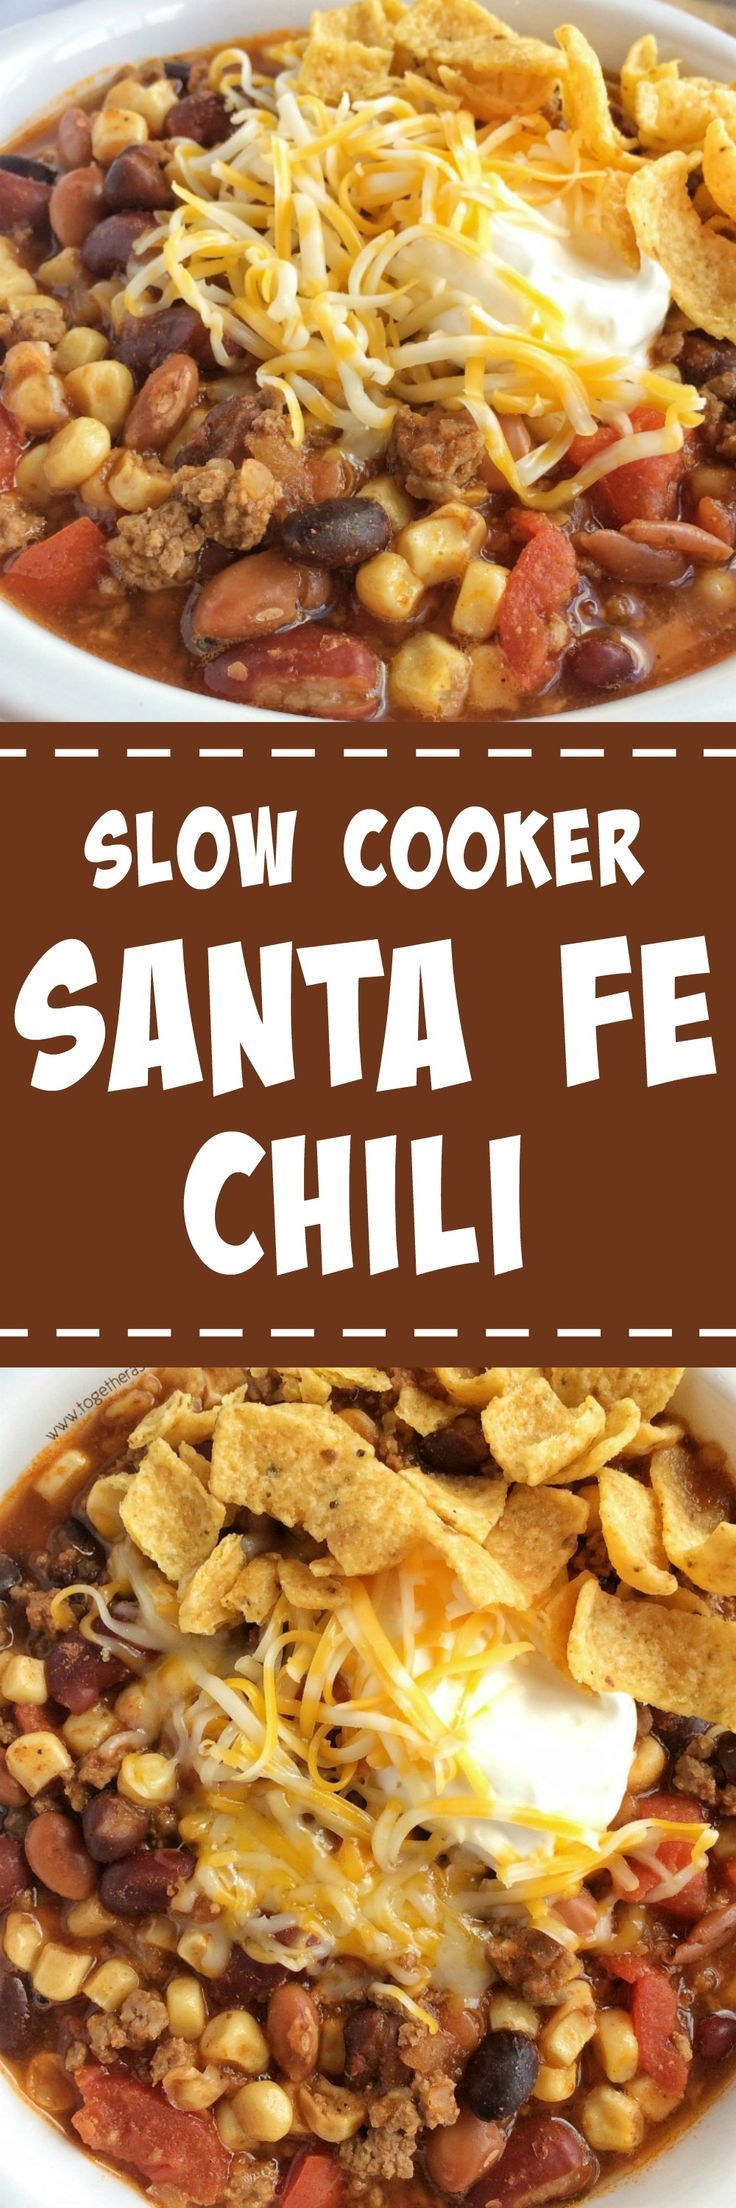 Santa fe chili is cooked in the slow cooker all day for ultra tender and flavorful chili. Brown some ground beef & onion, and add some cans into the crock pot. That's it! Serve with sour cream, shredded cheese, and fritos chips for the ultimate chili dinn